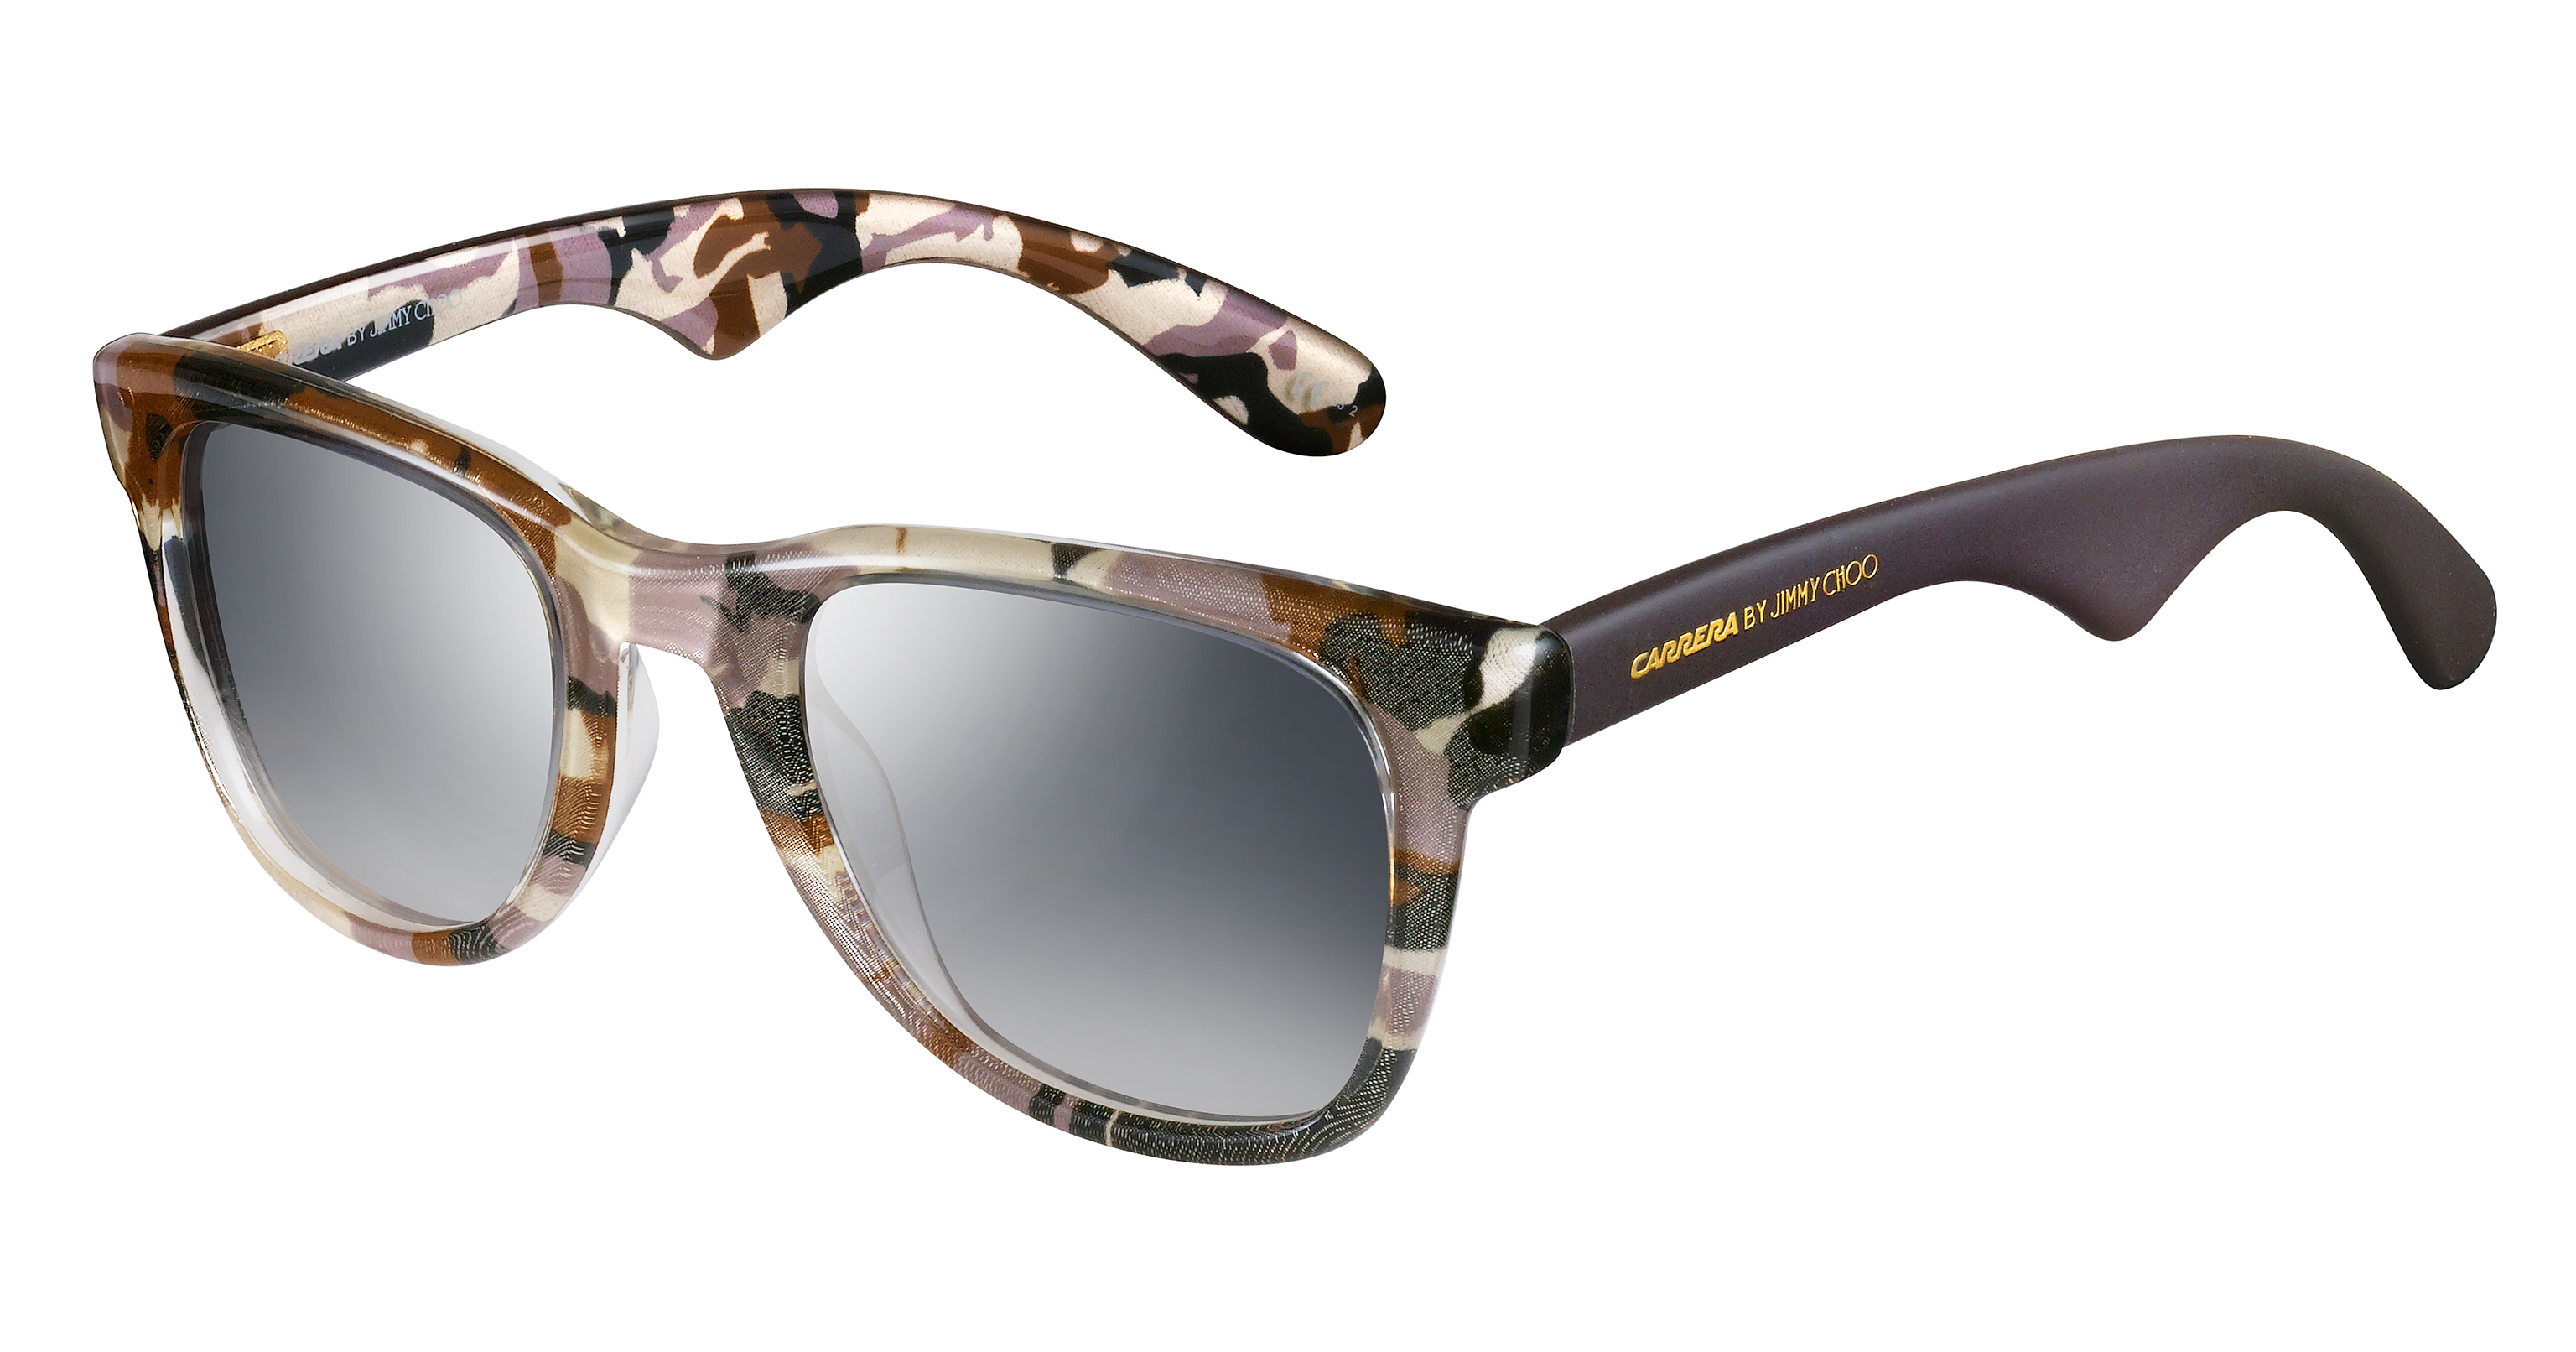 9681b7d9c28 Carrera and Jimmy Choo announce the launch of an exclusive capsule  collection of Carrera by Jimmy Choo sunglasses for Men